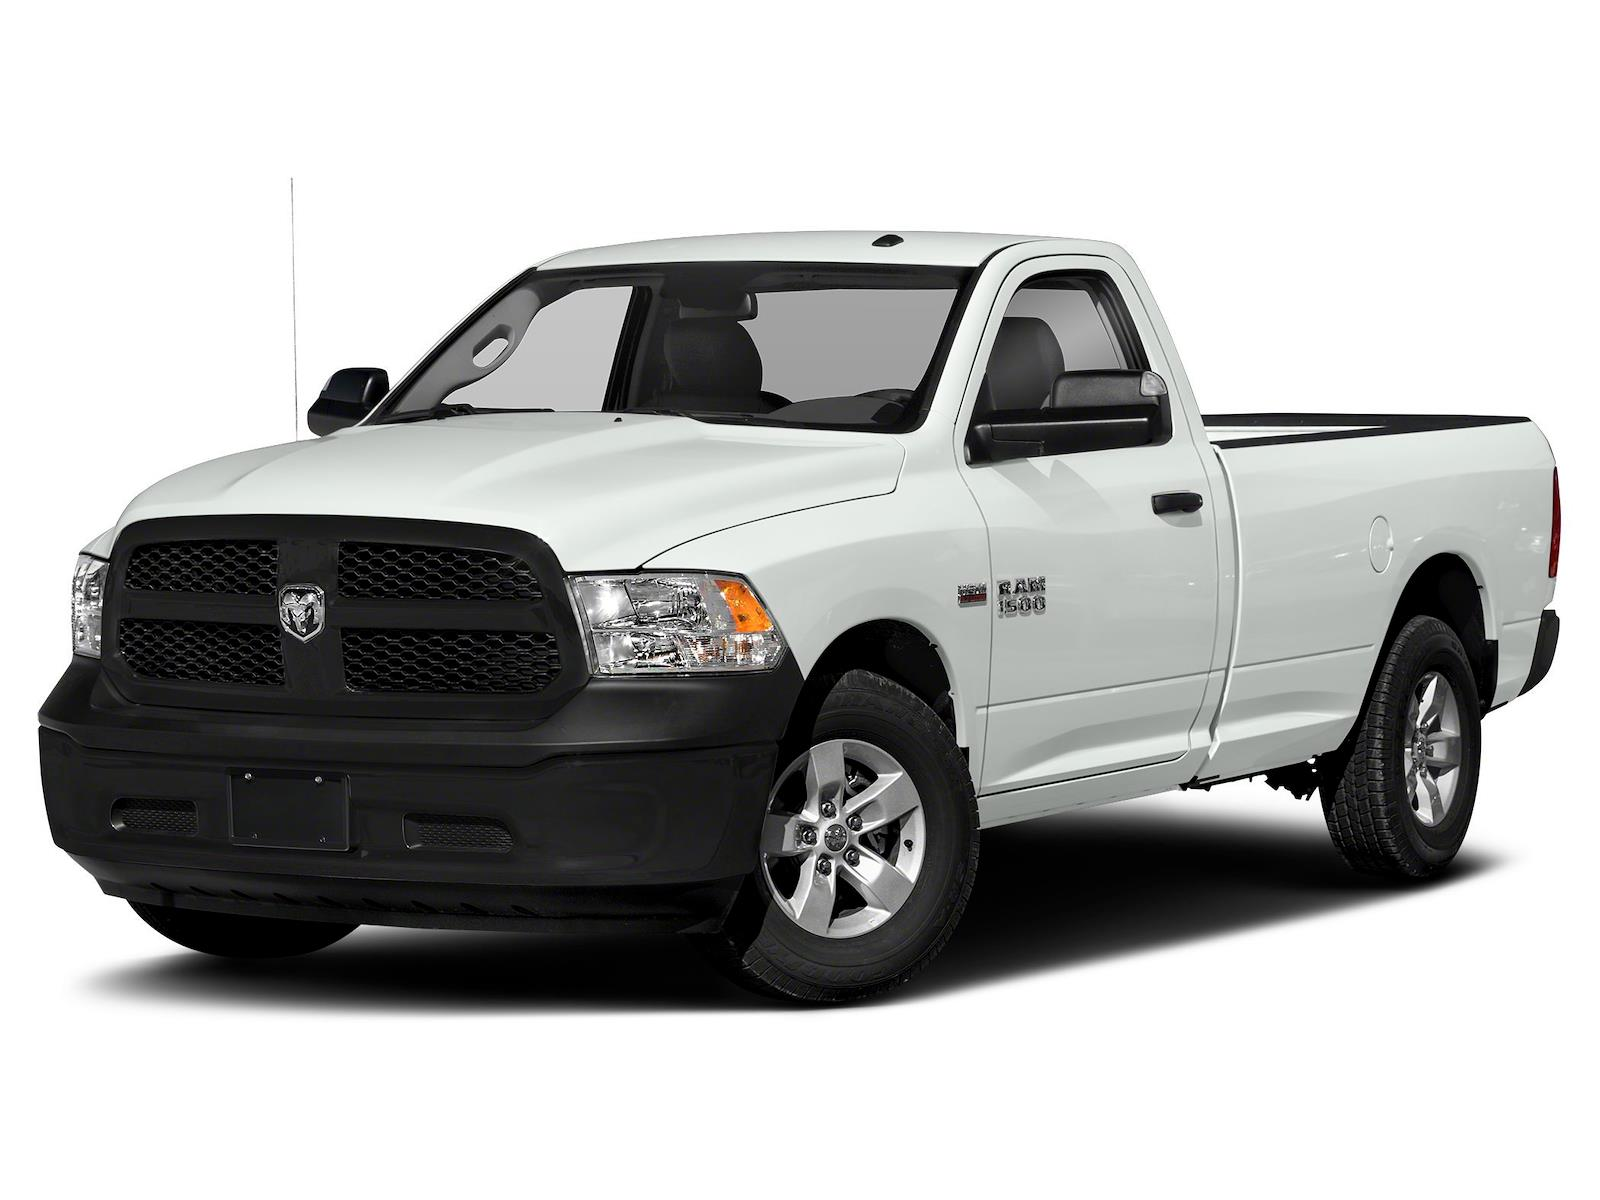 2019 Ram 1500 Regular Cab 4x2, Pickup #P20601 - photo 1